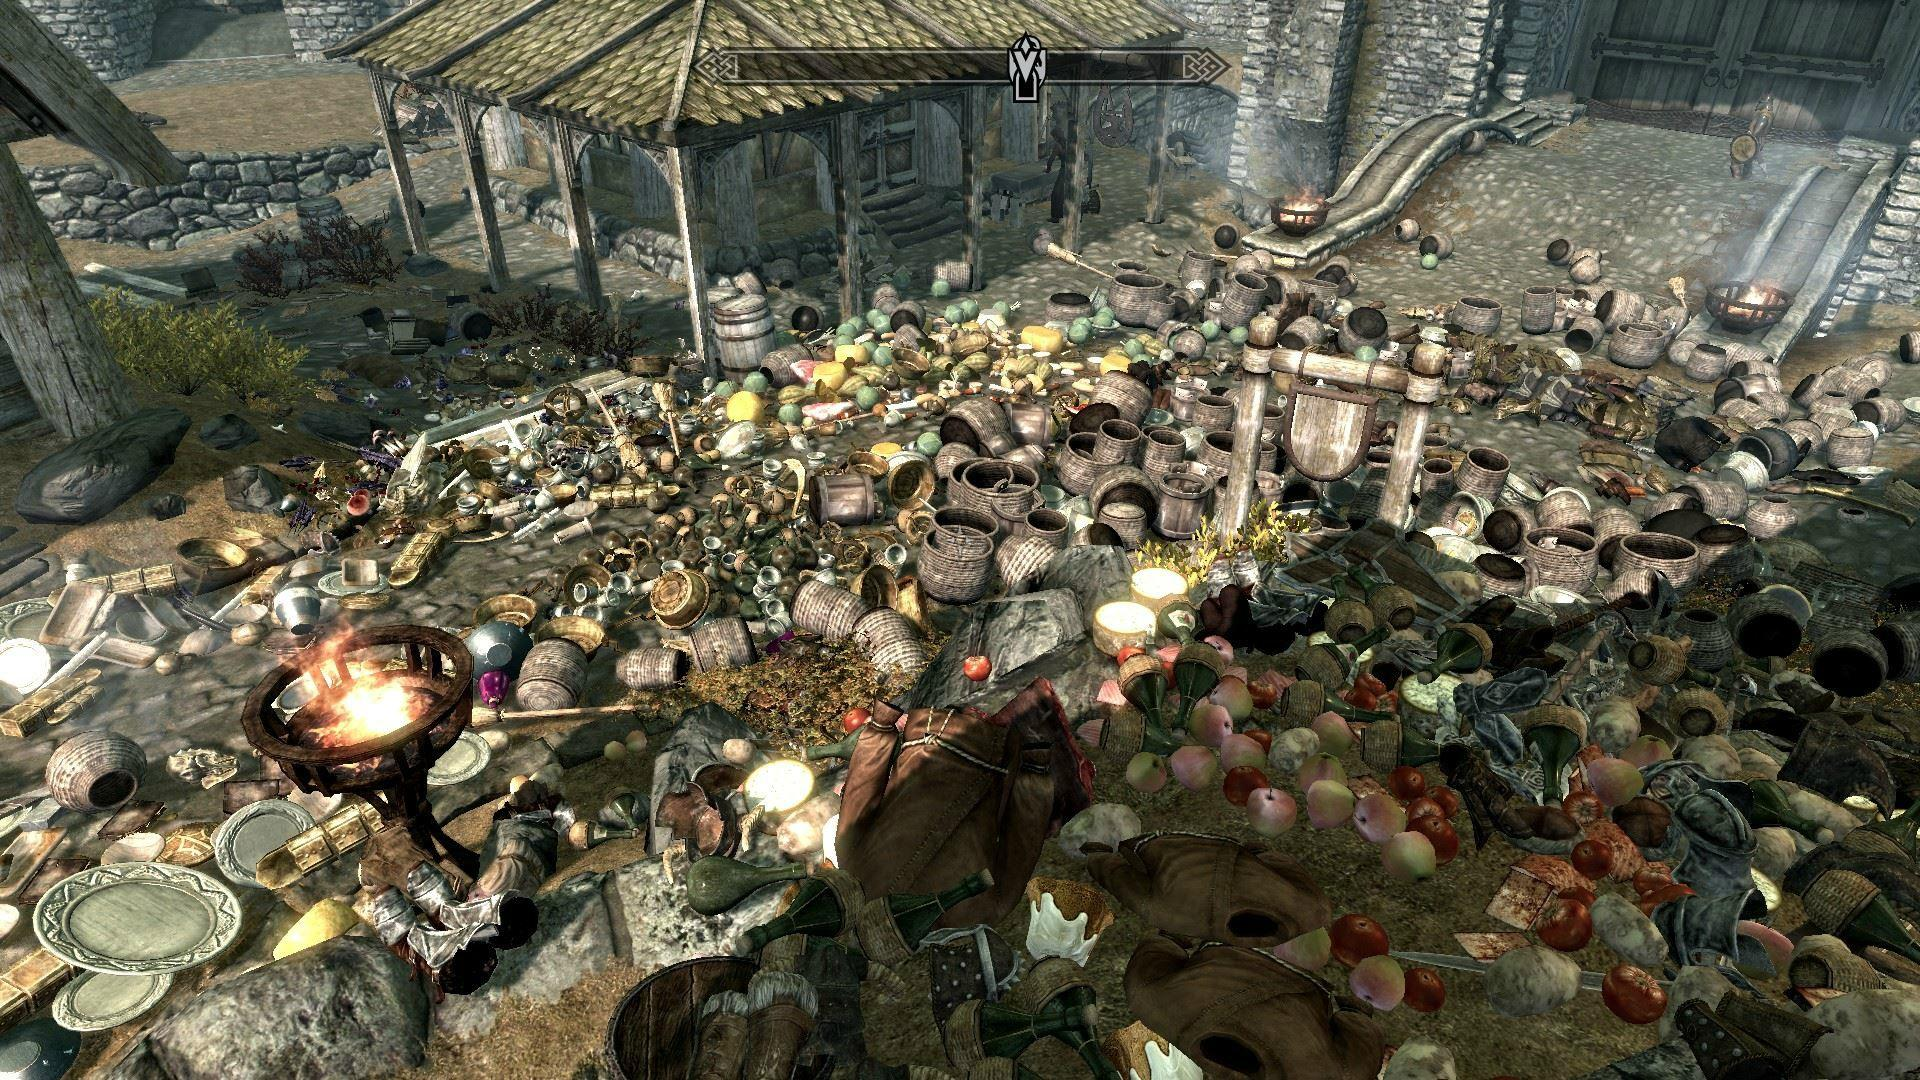 Hoarders Buried Alive Skyrim Edition